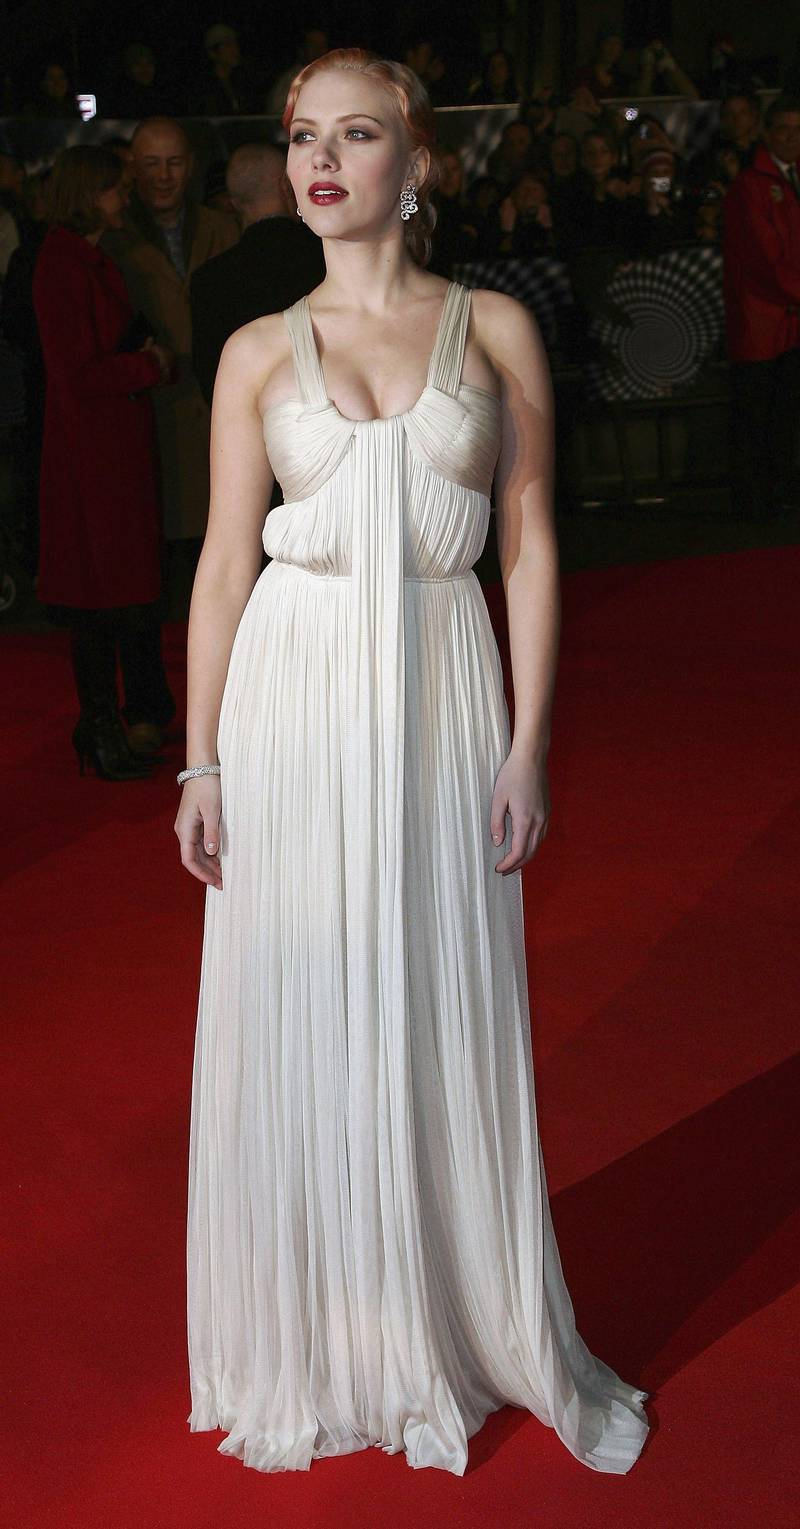 """LONDON - NOVEMBER 05:  Scarlett Johansson arrives at the UK Premiere of """"The Prestige"""" at the Odeon West End Leicester Square on November 5, 2006 in London, England.  (Photo by Gareth Cattermole/Getty Images)"""